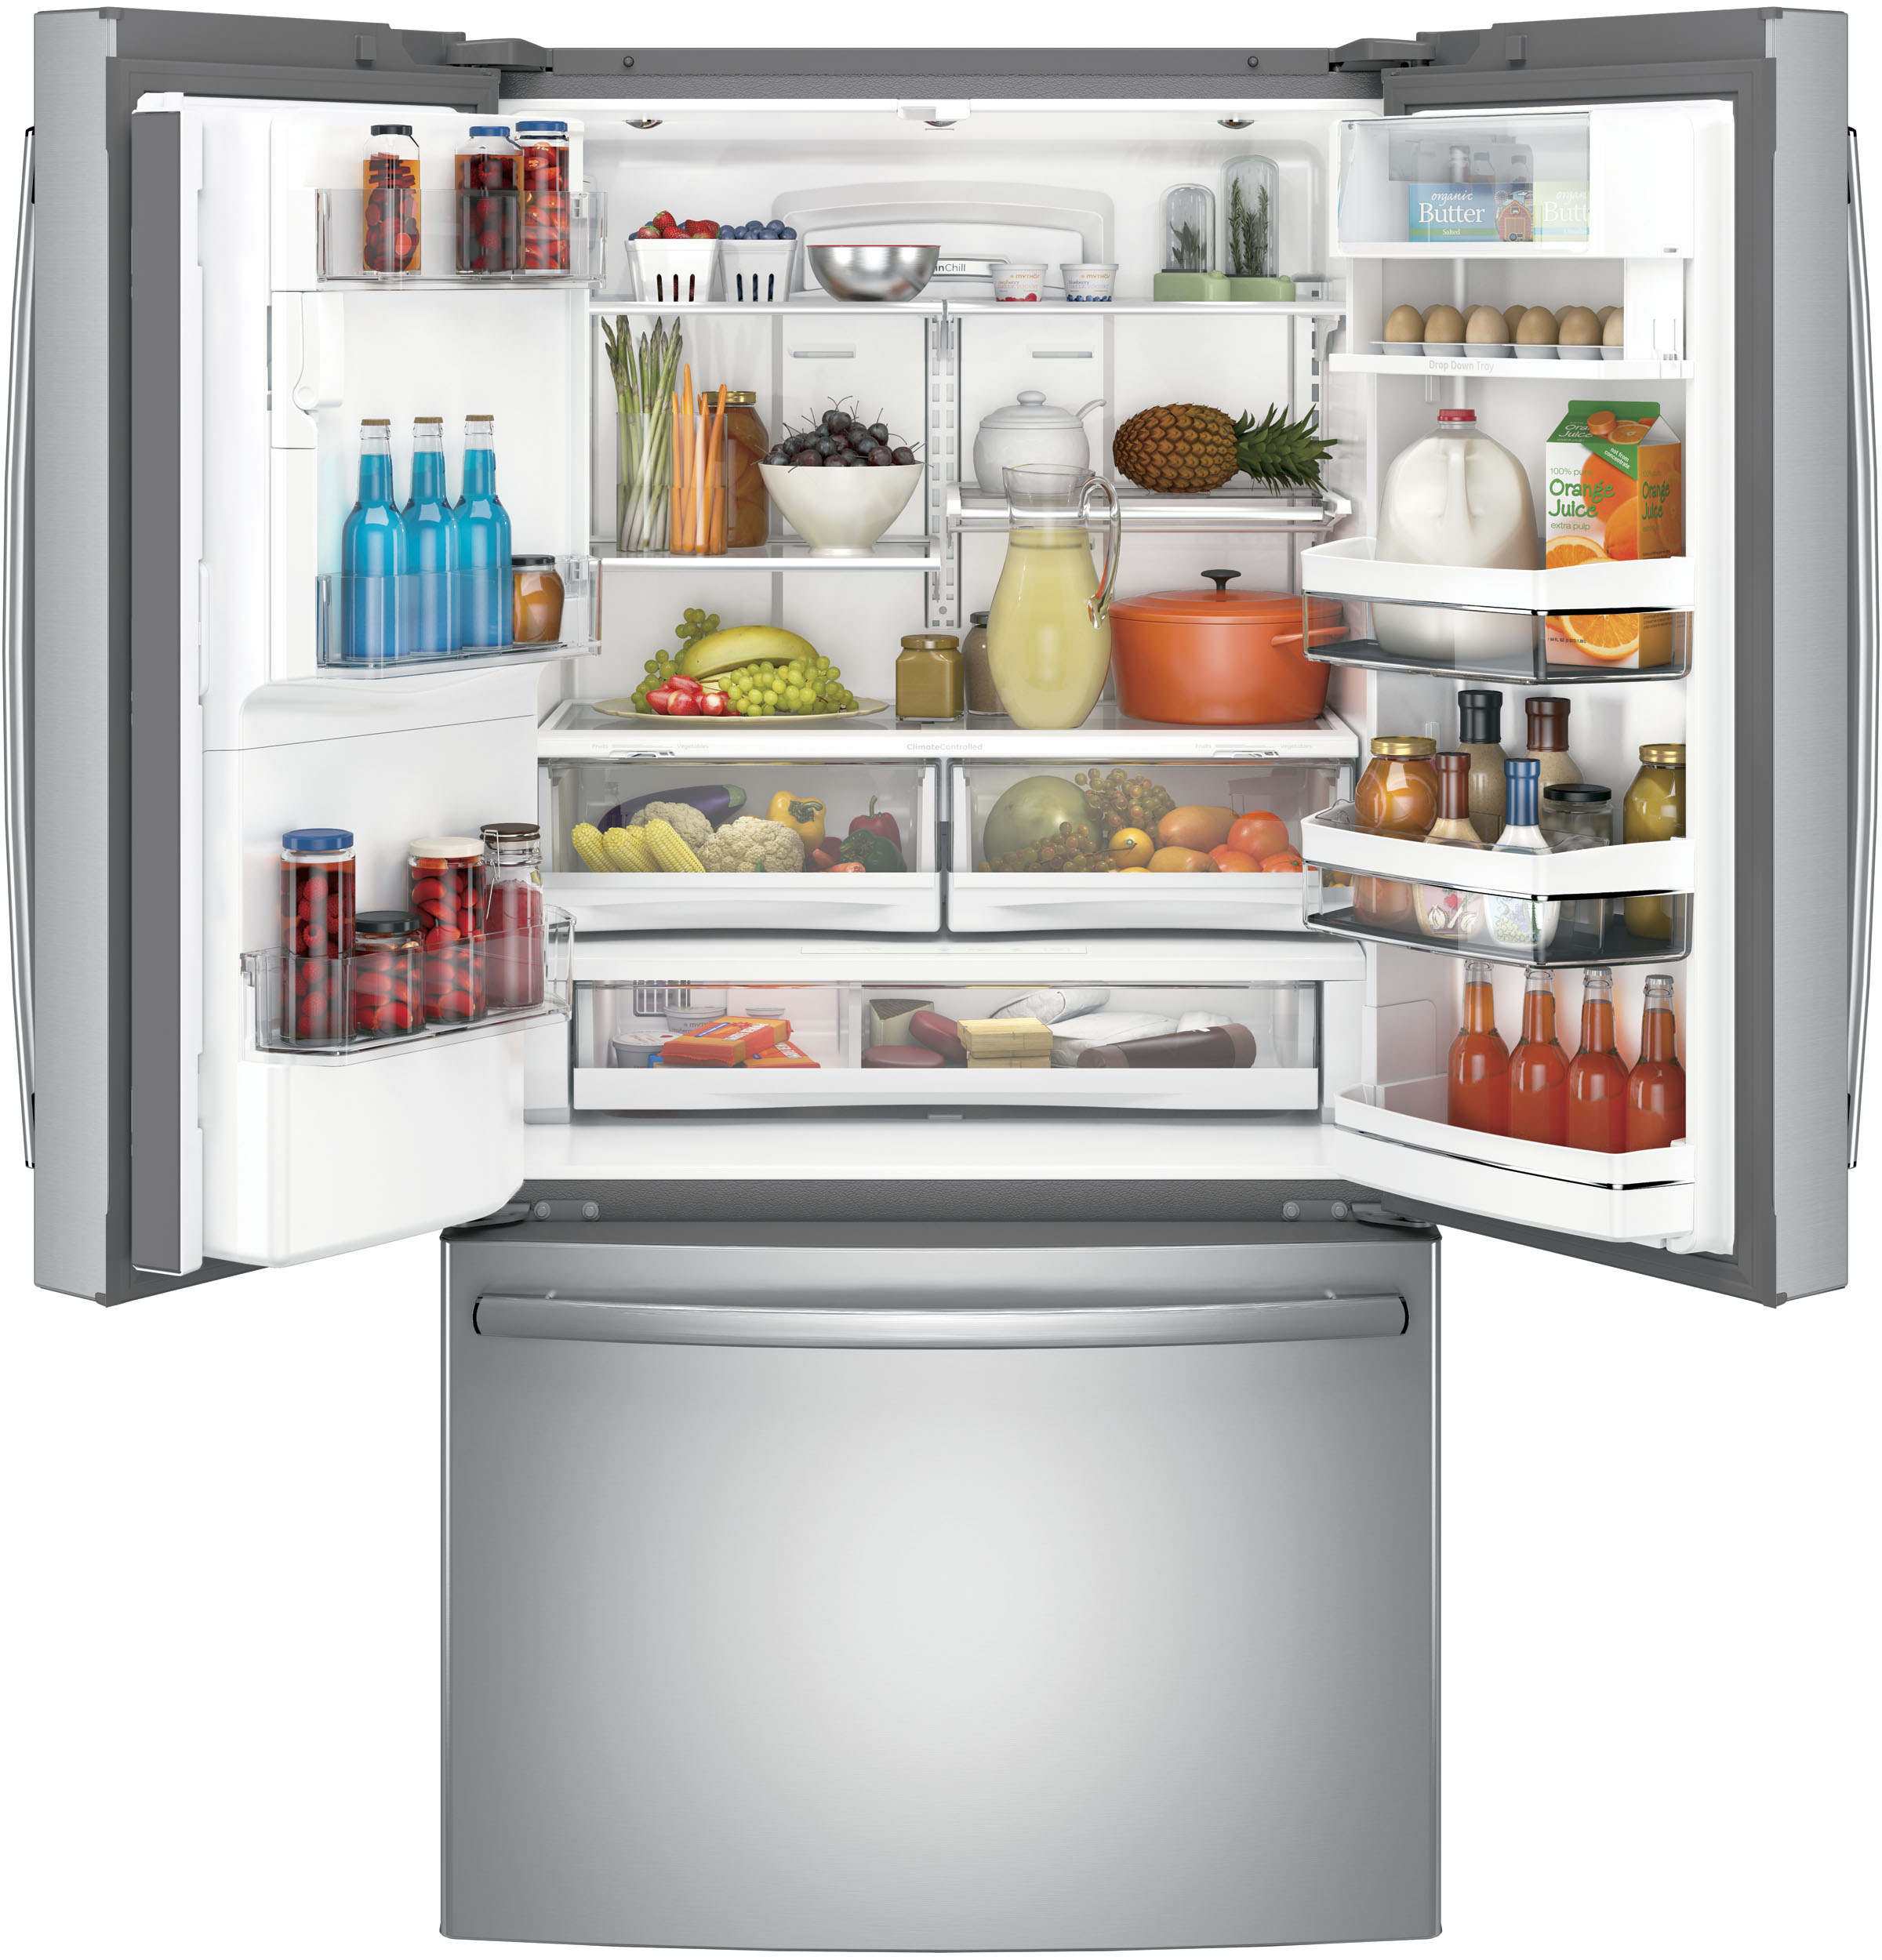 GE Profile™ Series PYE22PSKSS 22.2 cu. ft. Counter Depth French Door Refrigerator w/ Keurig® K-Cup® Brewing System - Stainless Steel